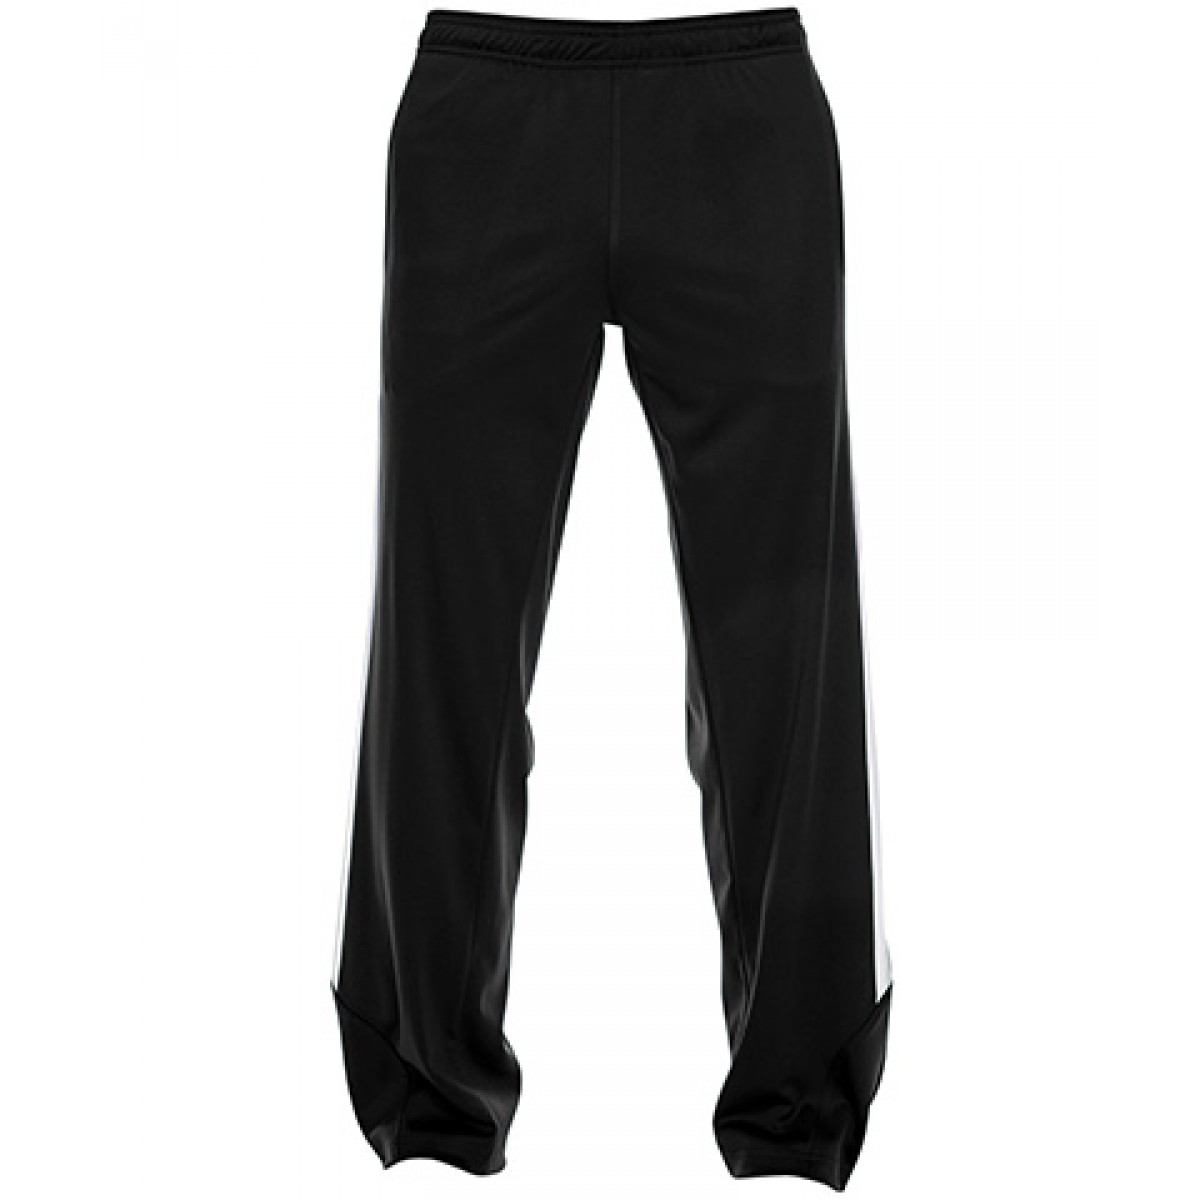 Men's Elite Performance Fleece Pant-Black-4XL